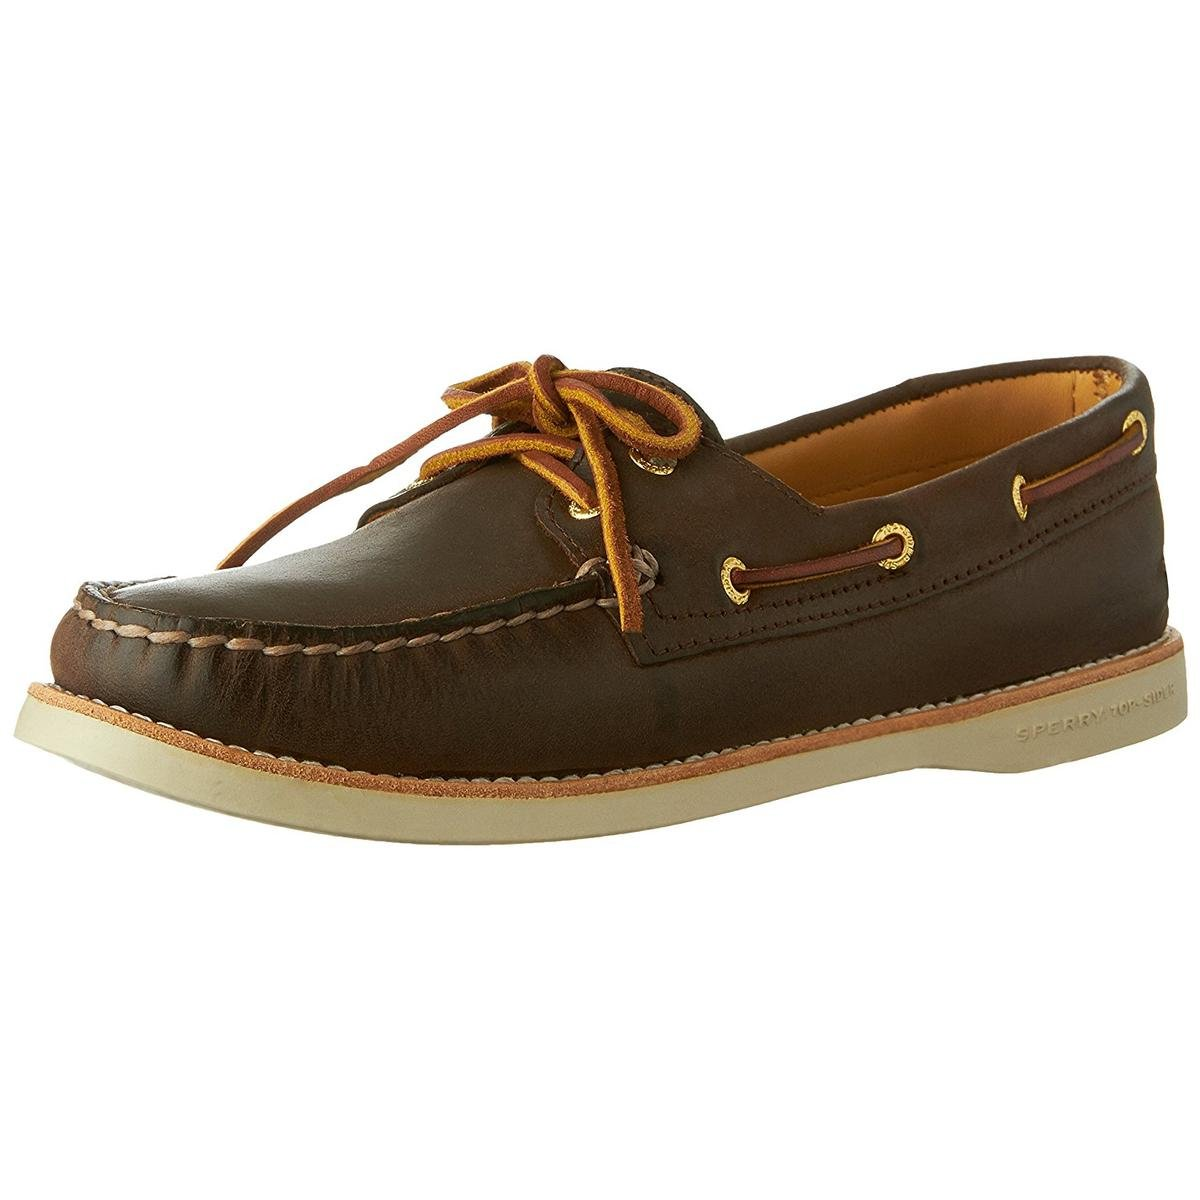 Sperry Top-Sider Women's Gold Cup Authentic Original Boat Shoe (5.5 B(M) US, Brown)